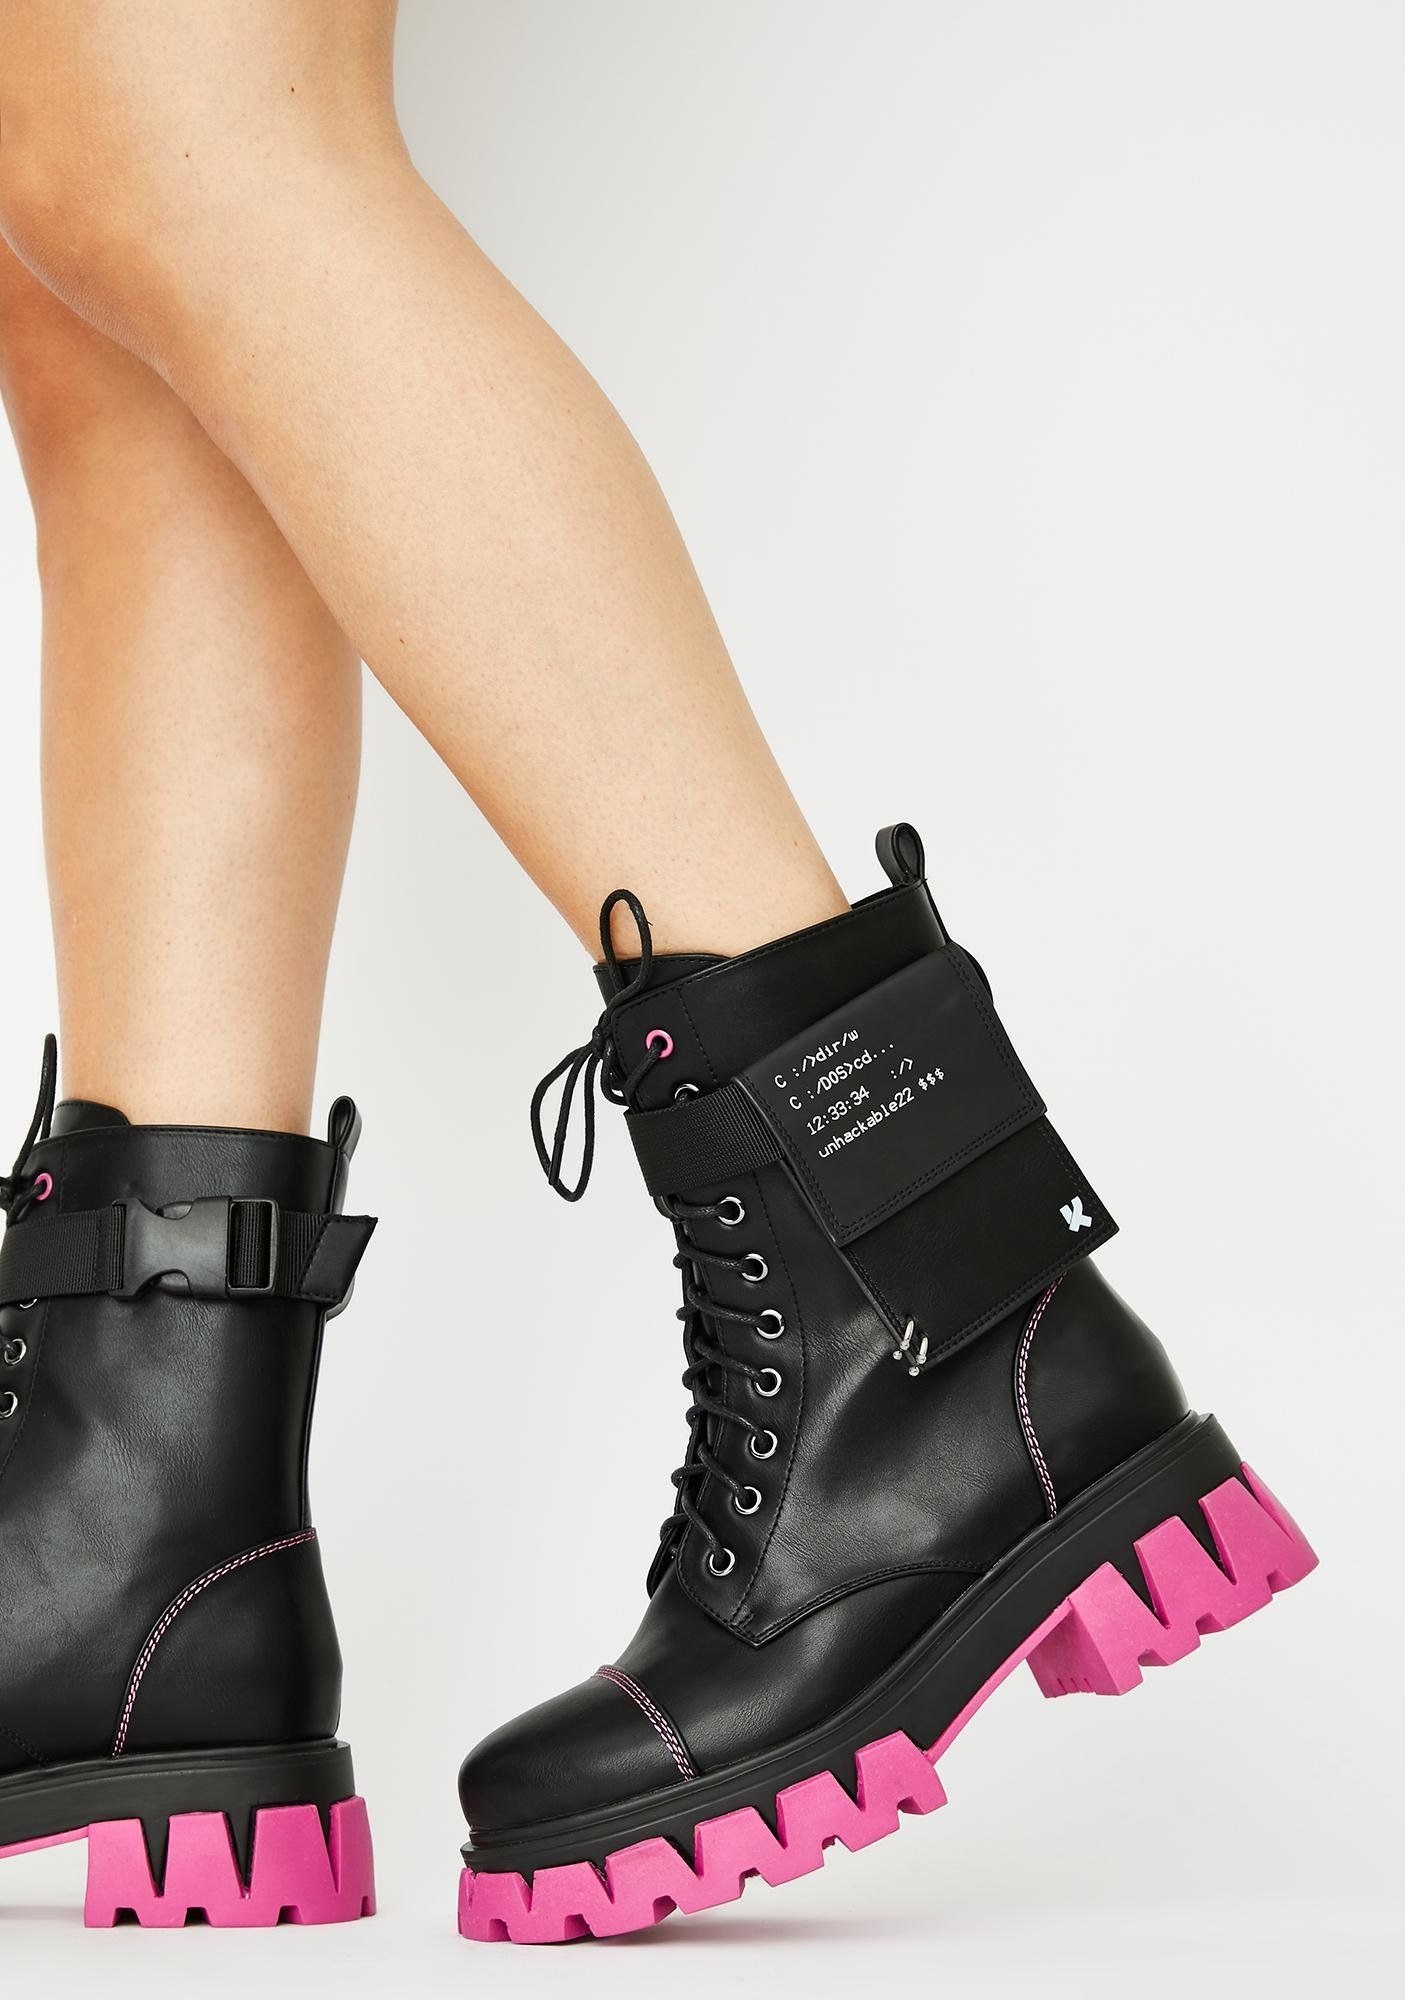 Purple Banshee Combat Boots Boots Combat Boots Punk Boots Shop your next pair of women's shoes from koi footwear with free express shipping and afterpay available. purple banshee combat boots boots